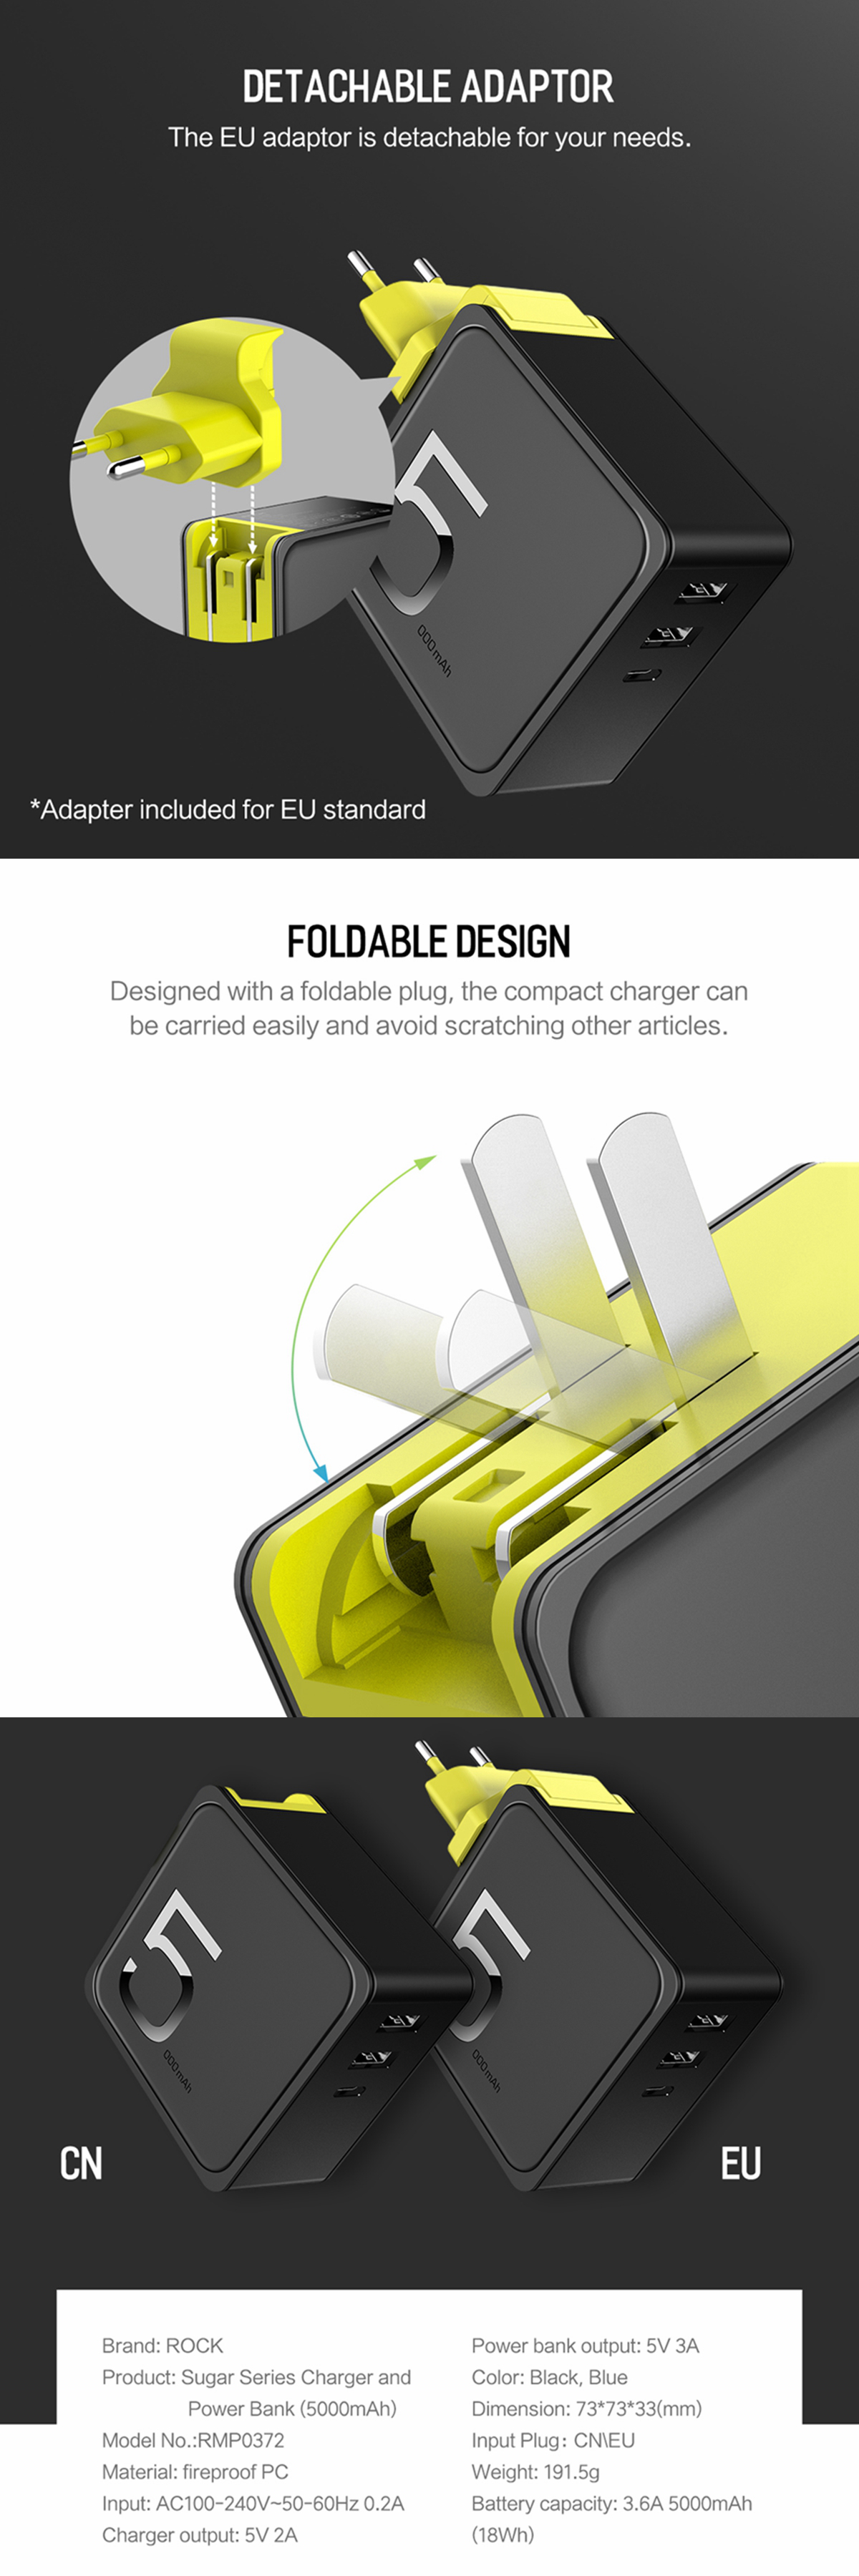 ROCK 5000mAh 2 in 1 Portable Power Bank 3 Port Type C Fast USB Charger EU US For Smart Phone Macbook